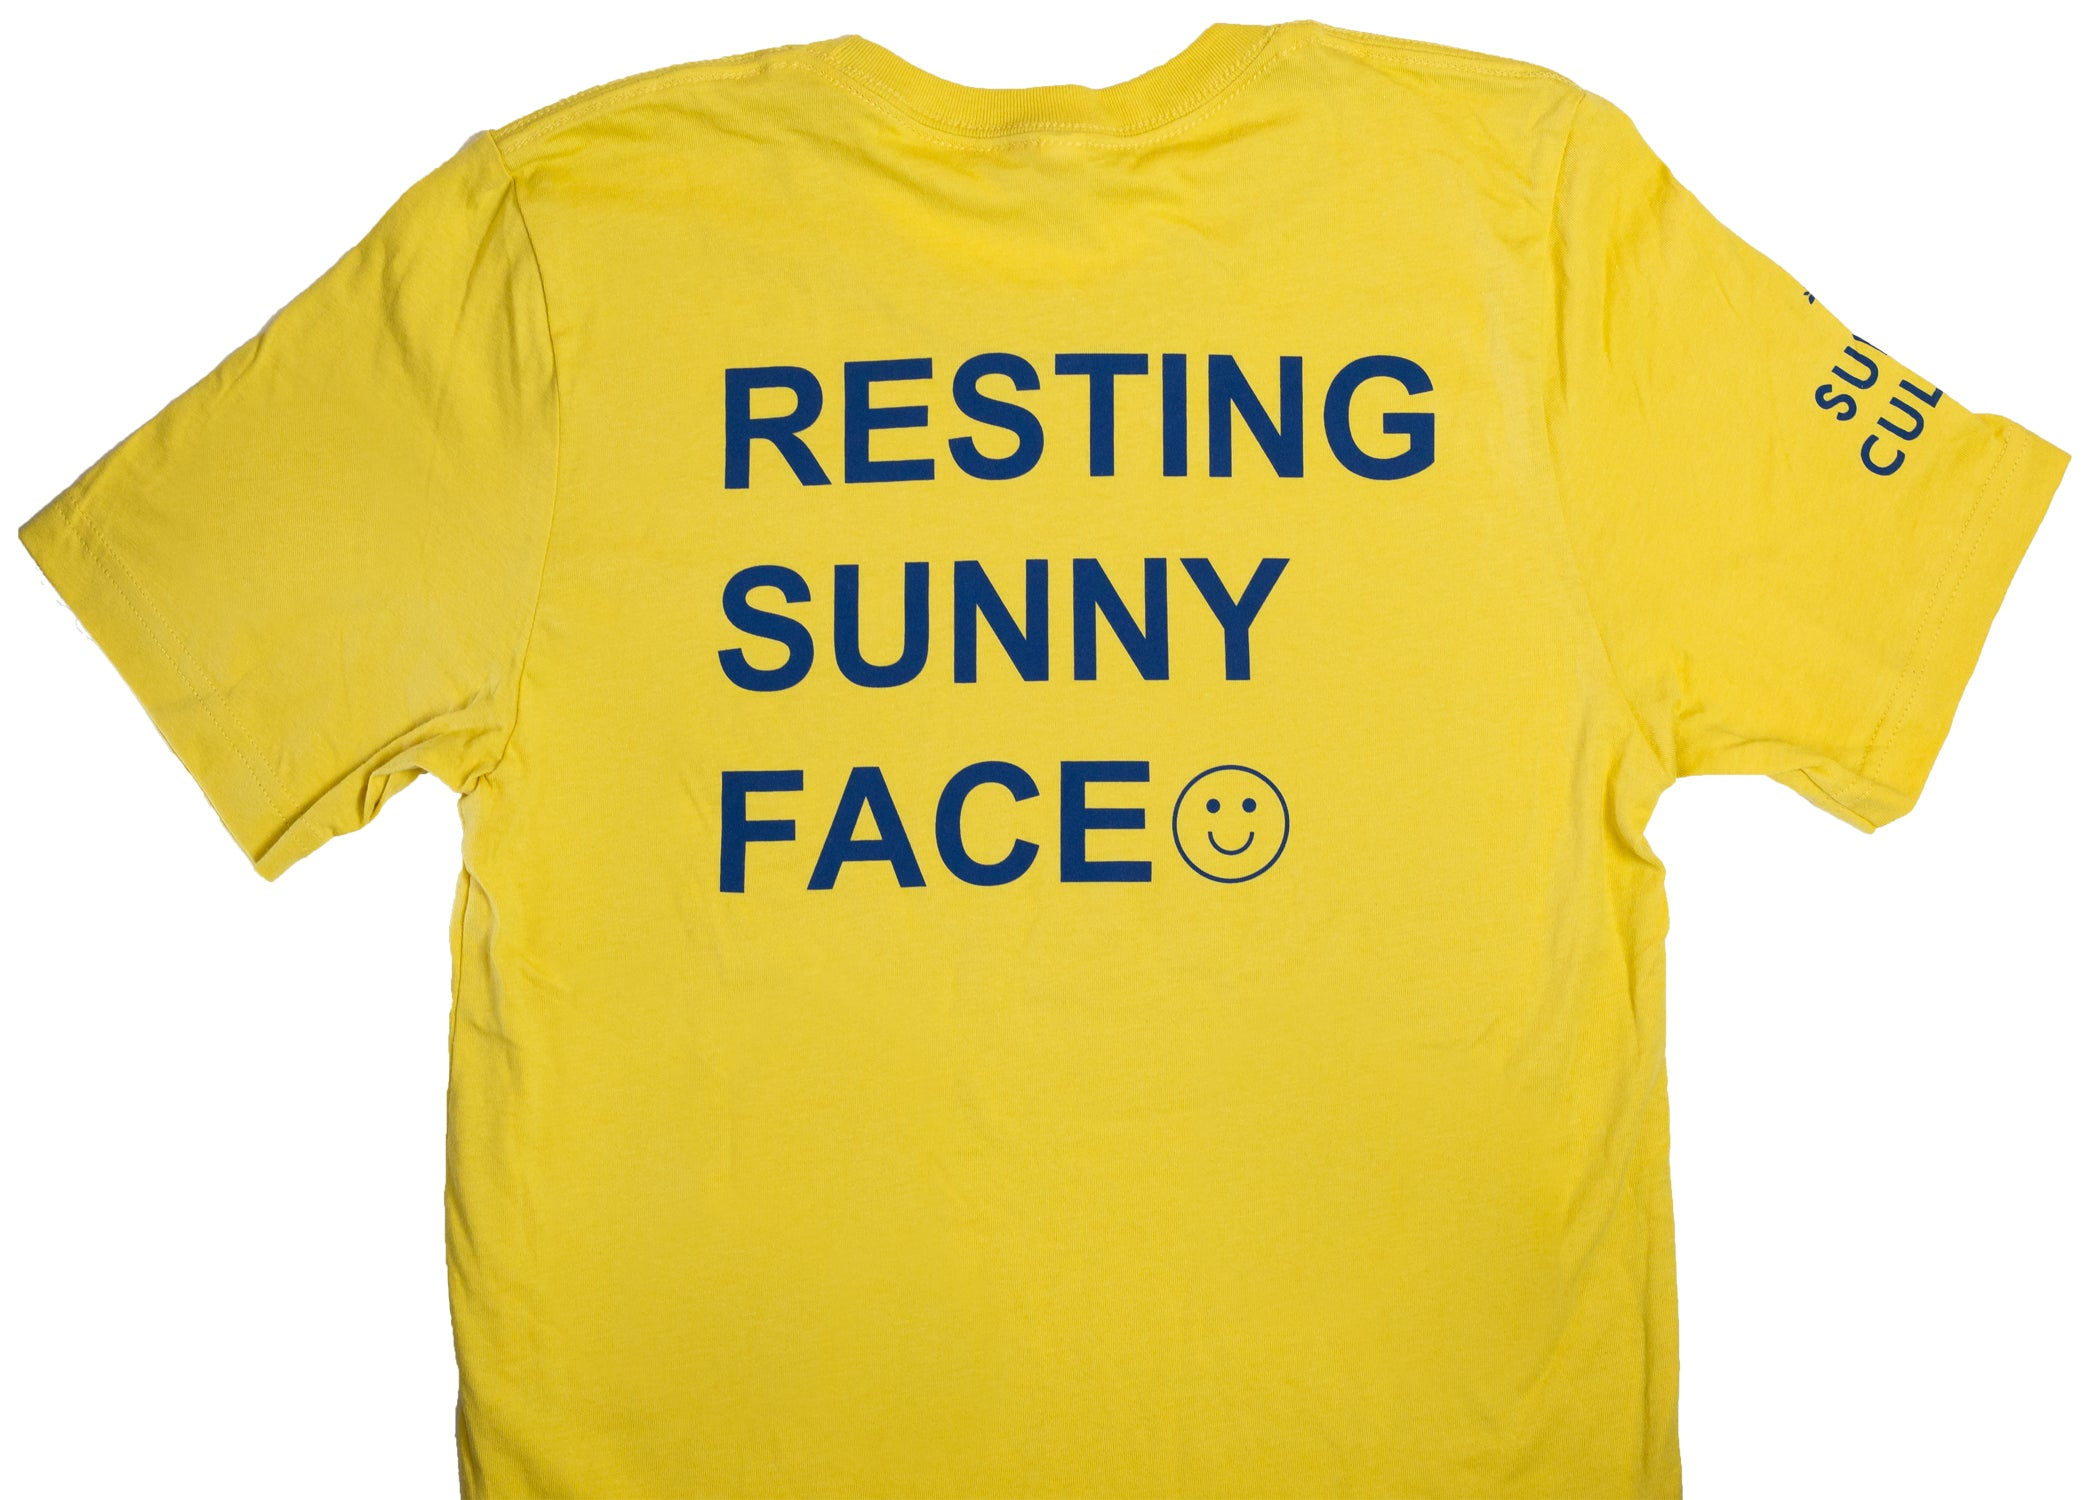 Resting Sunny Face Shirt